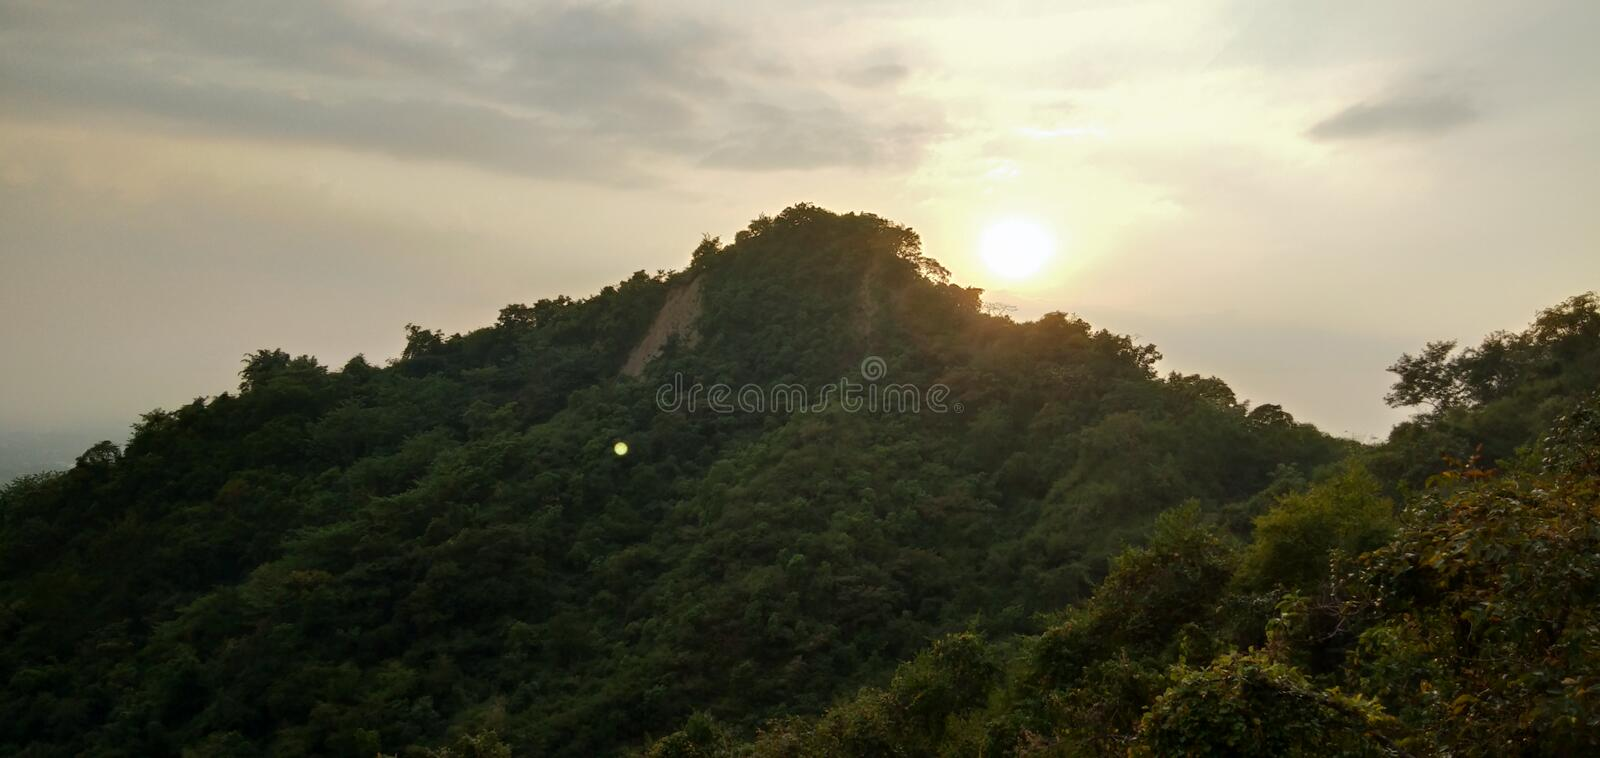 The Sun and the Hill royalty free stock image